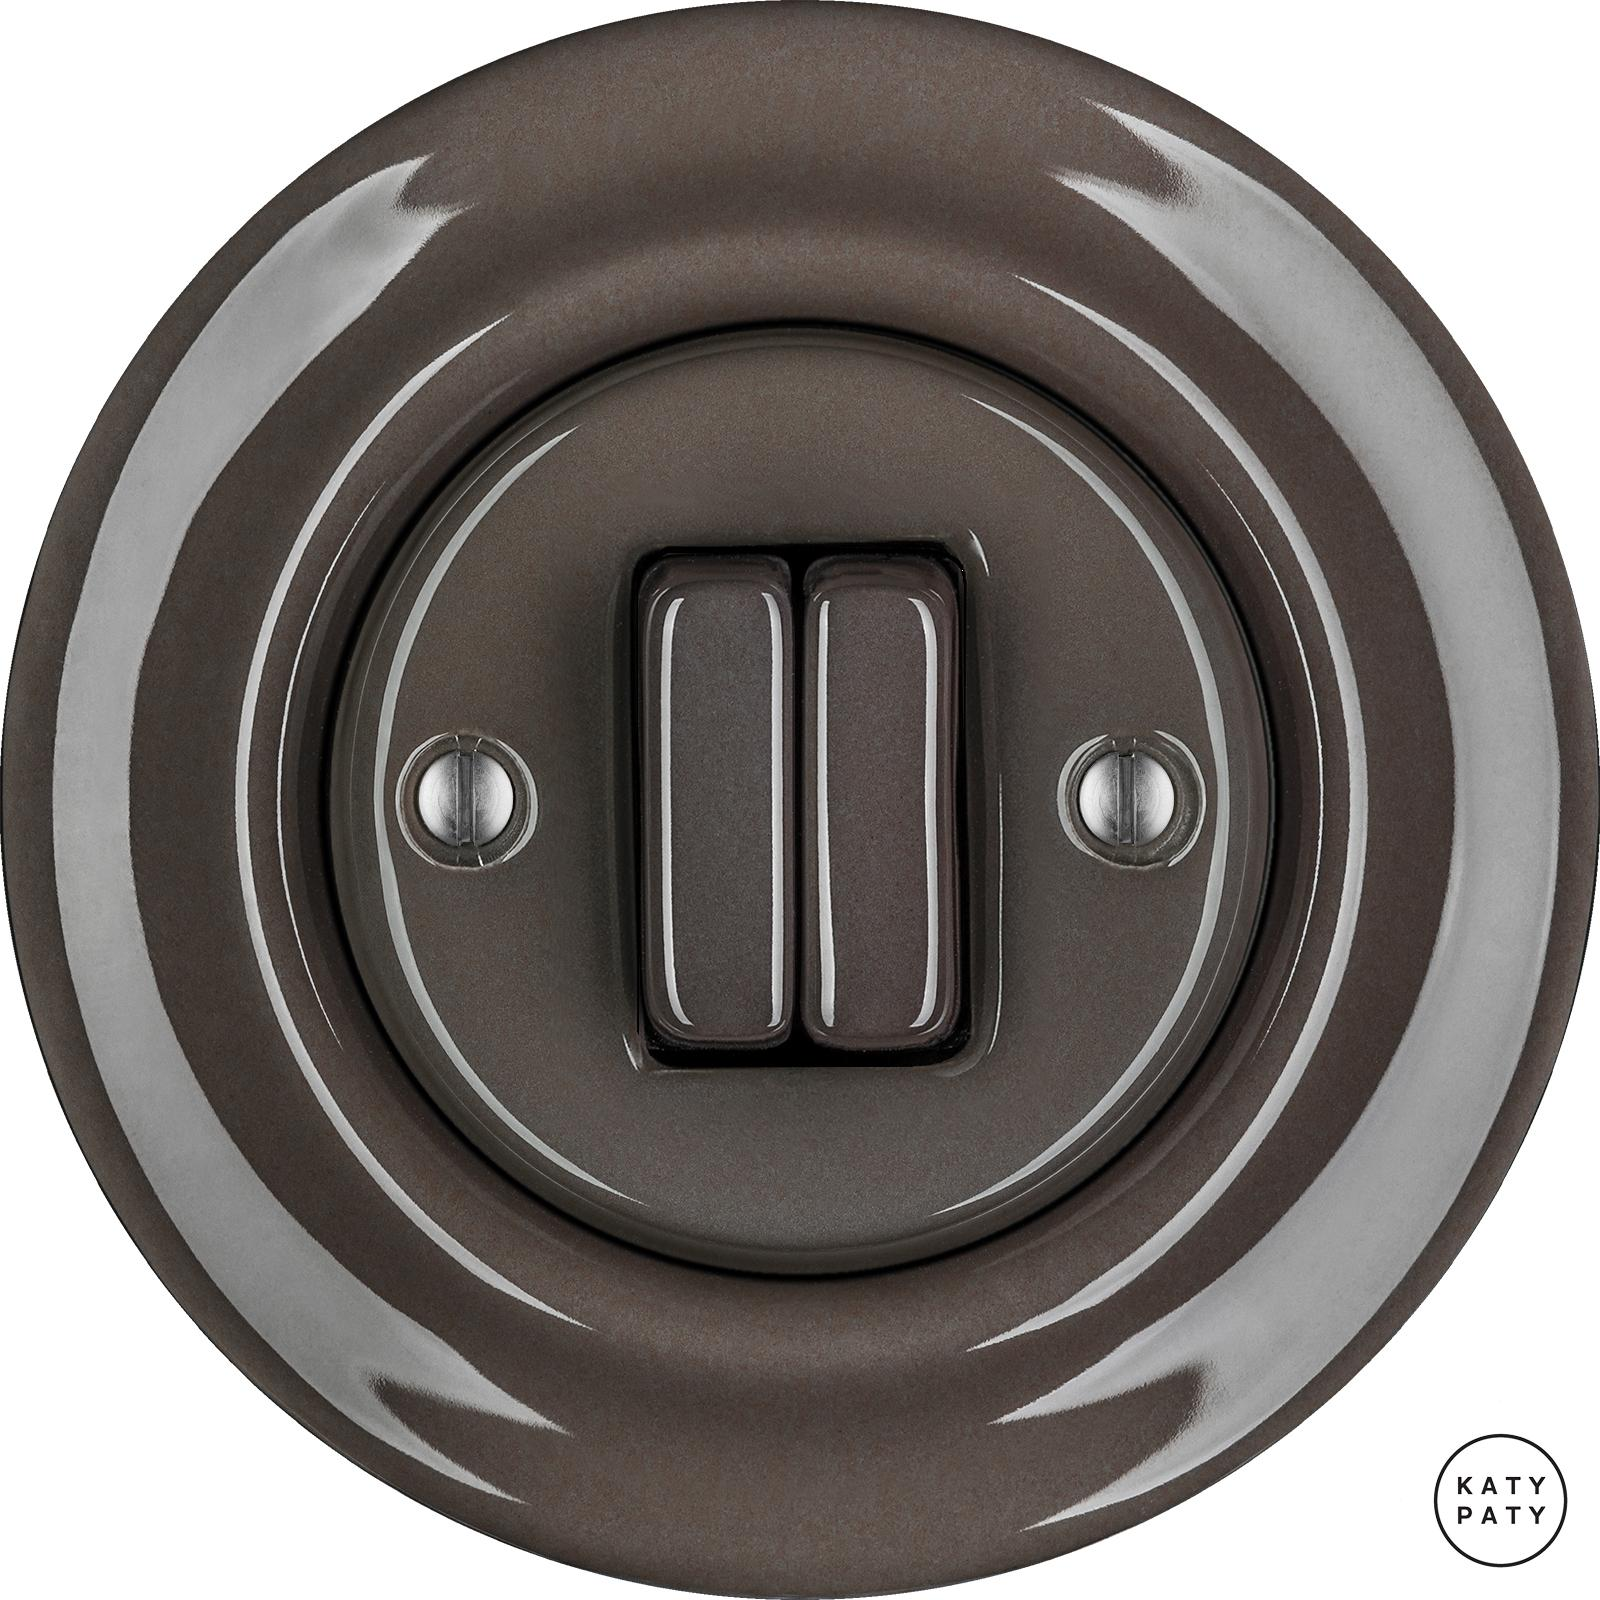 Porcelain switches - a double key ()  - BRUNETUM | Katy Paty